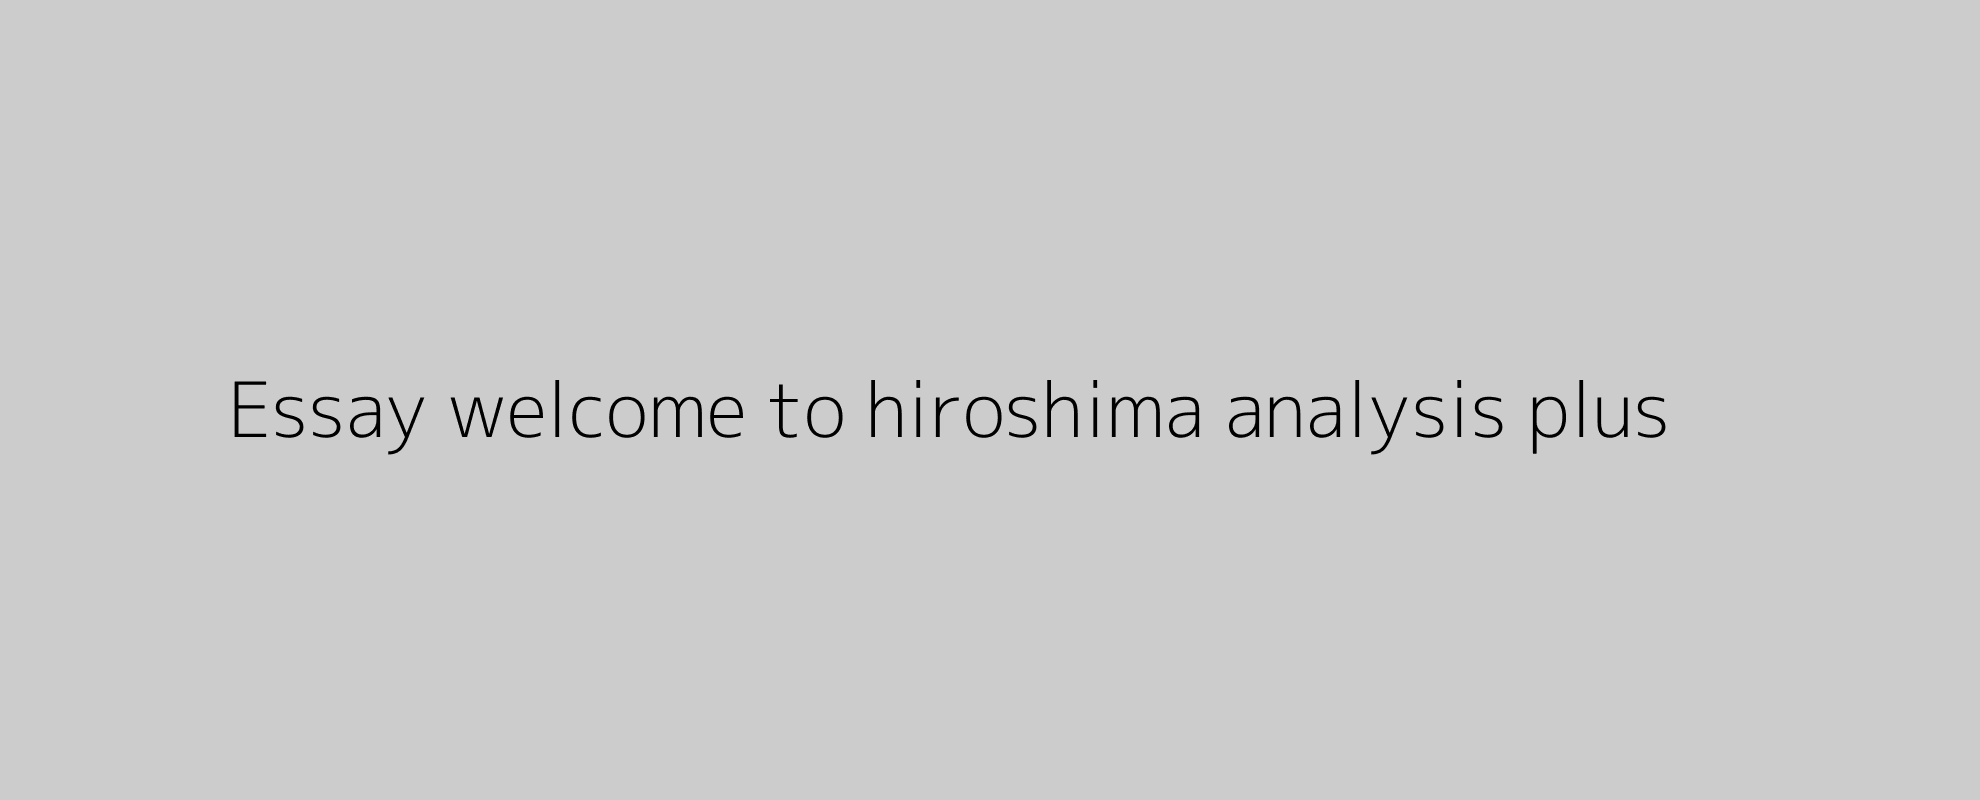 Essay welcome to hiroshima analysis plus